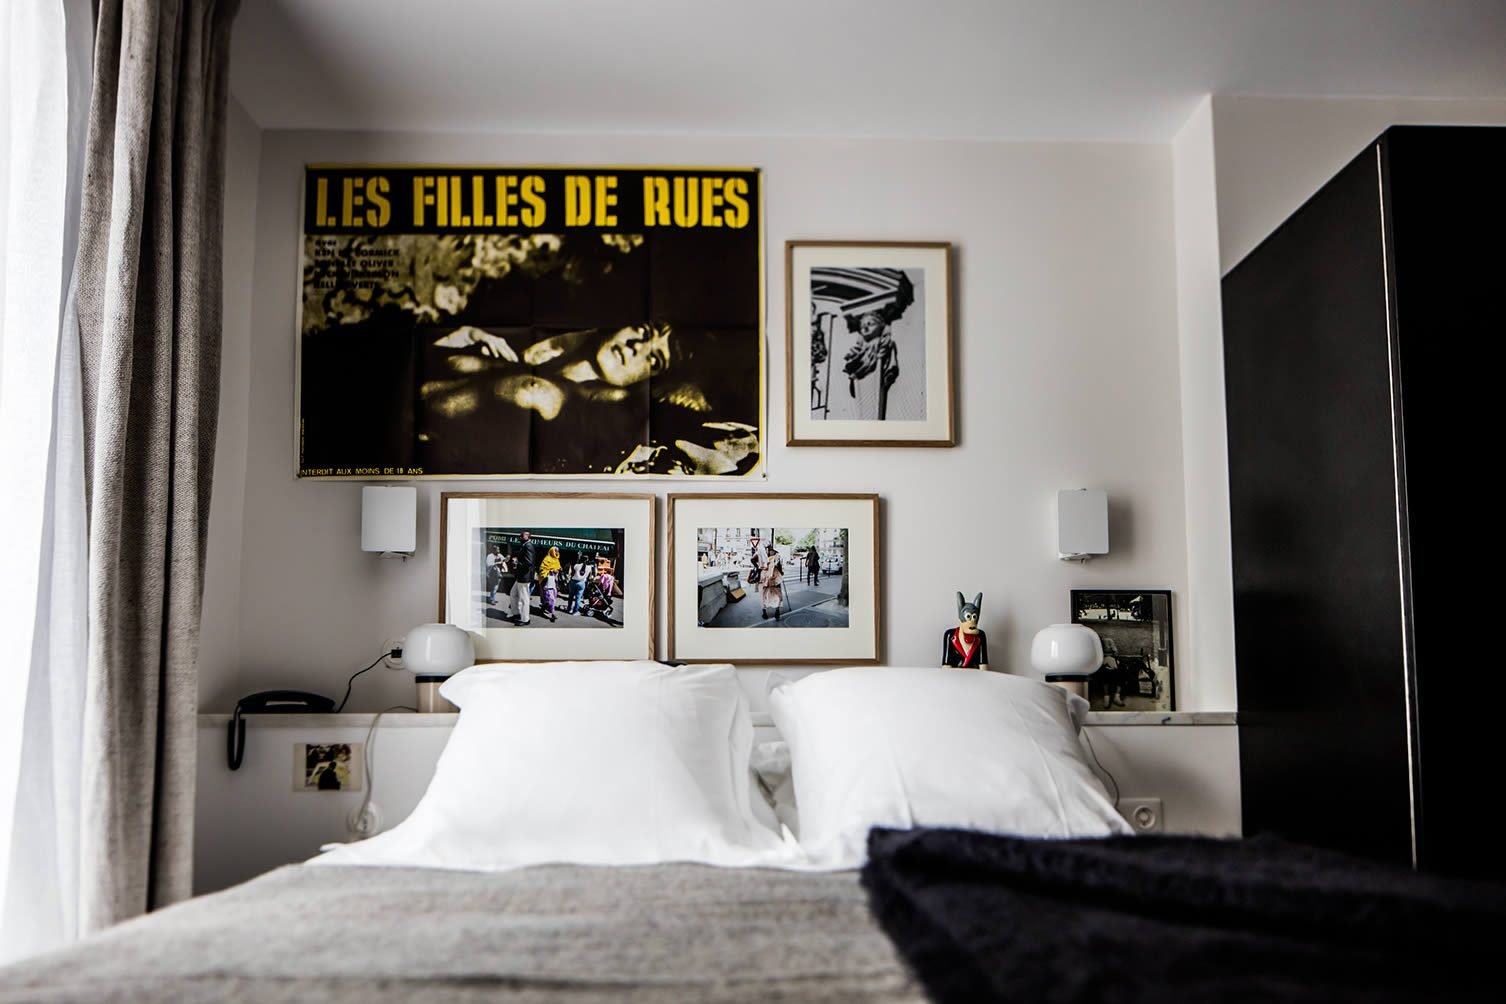 Hotel Pigalle Paris Le Pigalle Hotel Paris 9th Arrondissement Design Hotel Pigalle